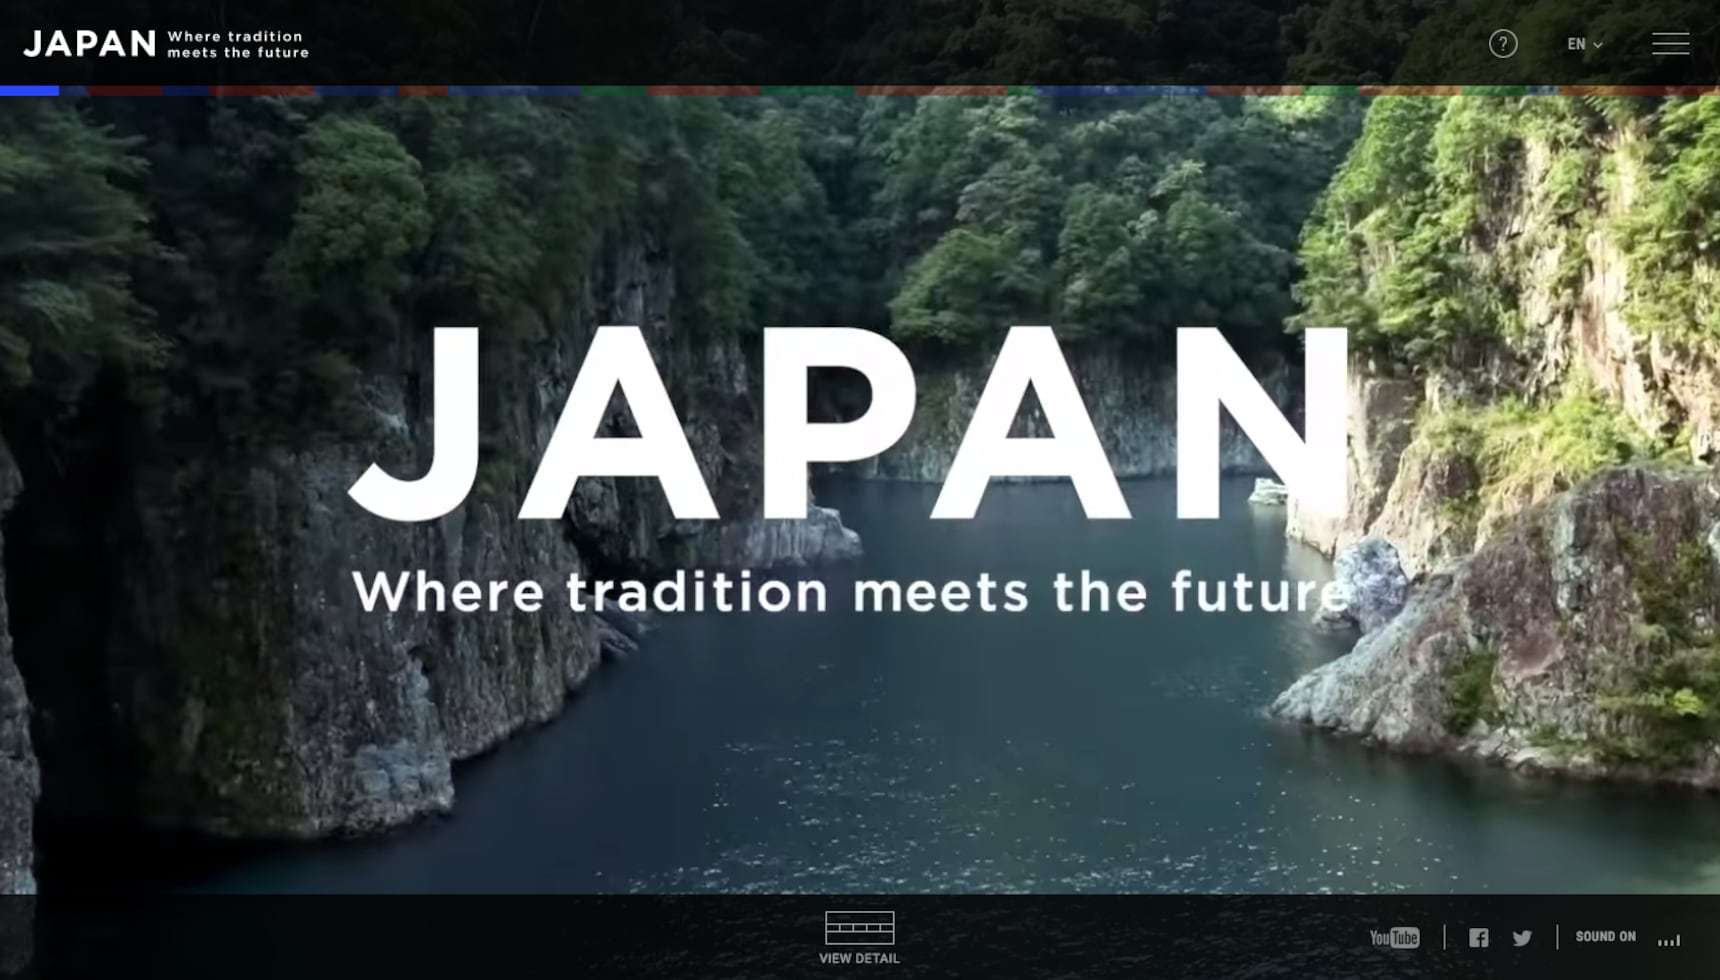 Japan—Where Tradition Meets the Future